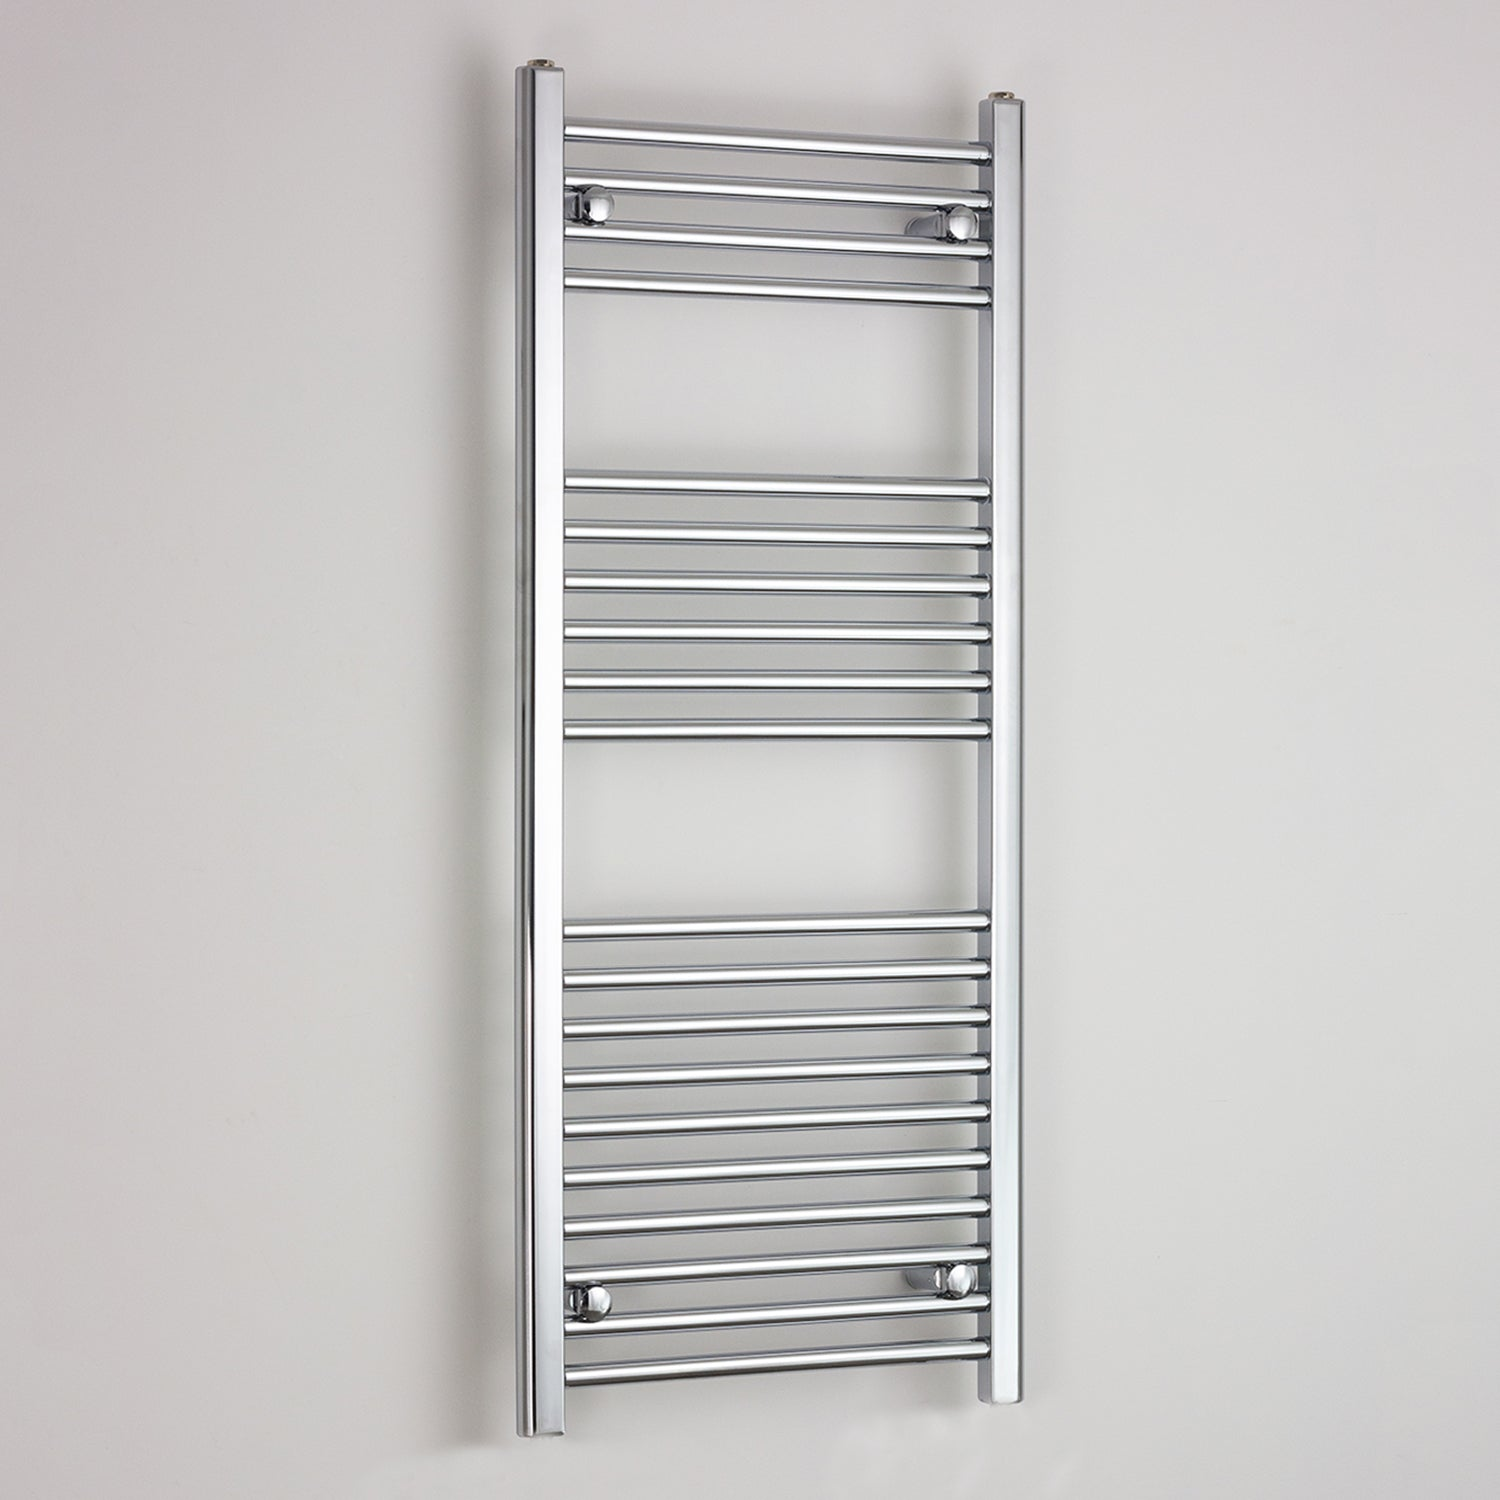 400mm Wide 1200mm High Flat Chrome Heated Towel Rail Radiator HTR,Towel Rail Only